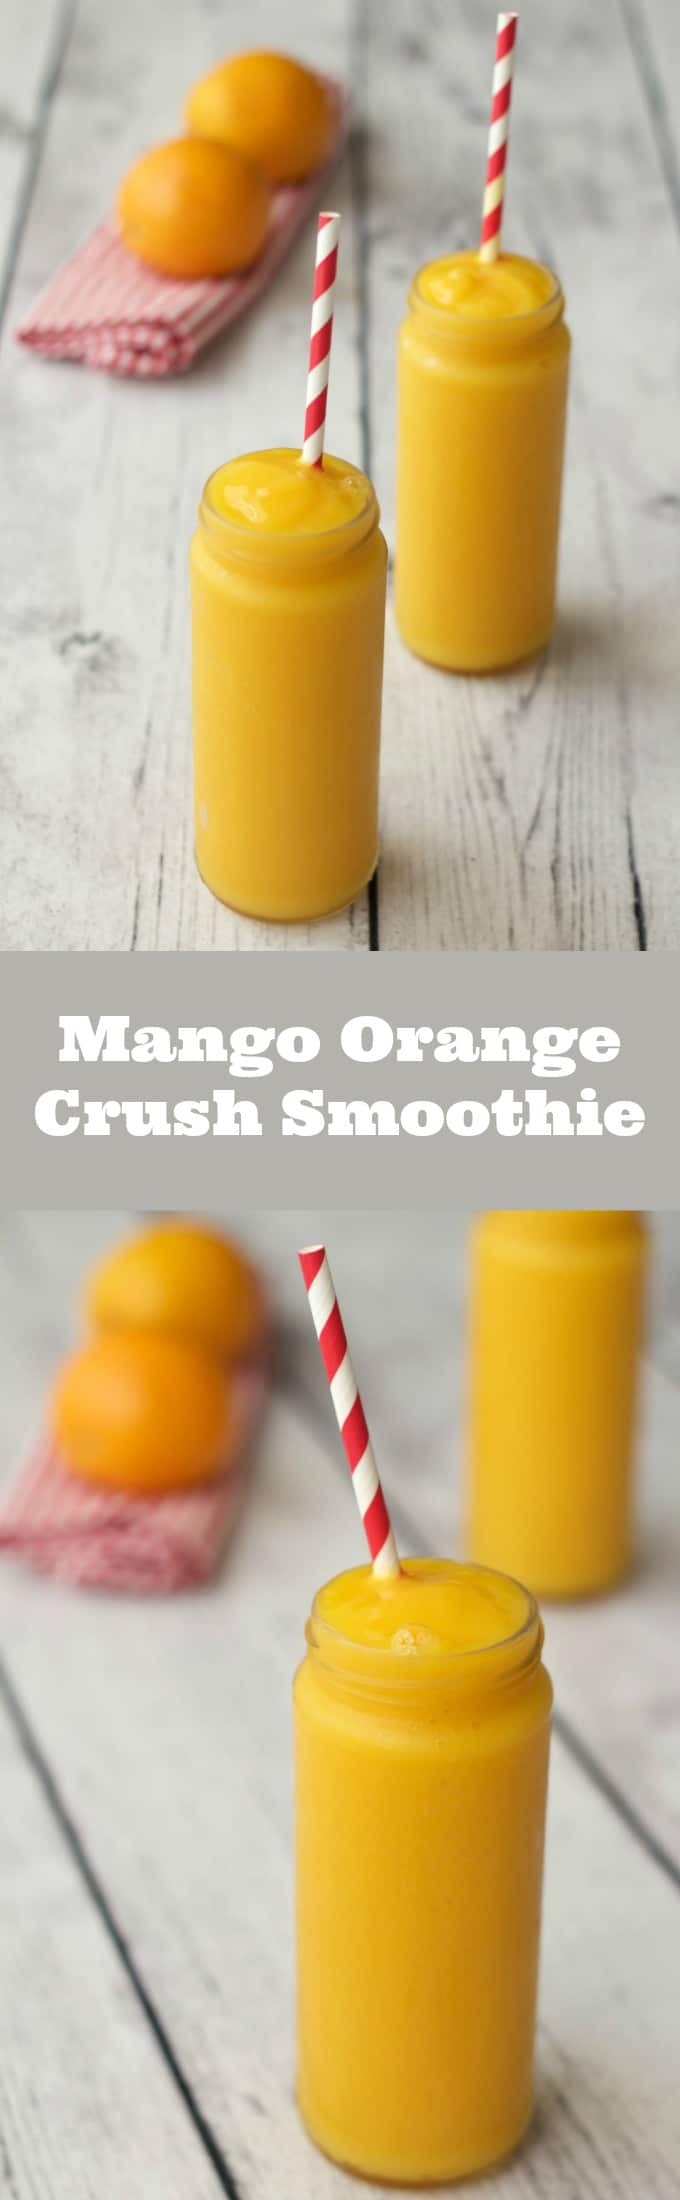 Mango Orange Crush Smoothie #vegan #lovingitvegan #dairyfree